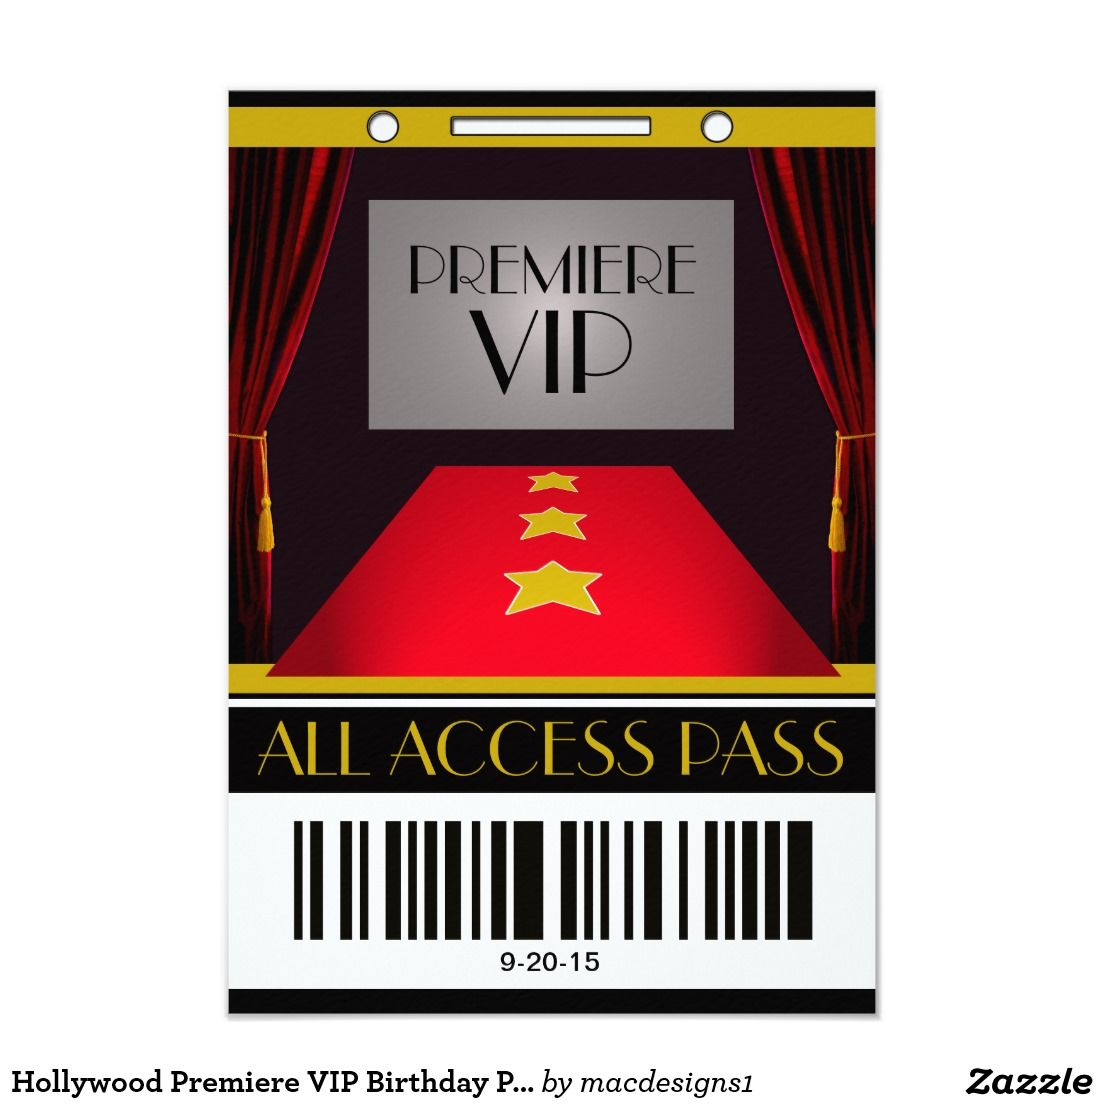 Hollywood Premiere VIP Birthday Party Card | Vip, Birthdays and ...